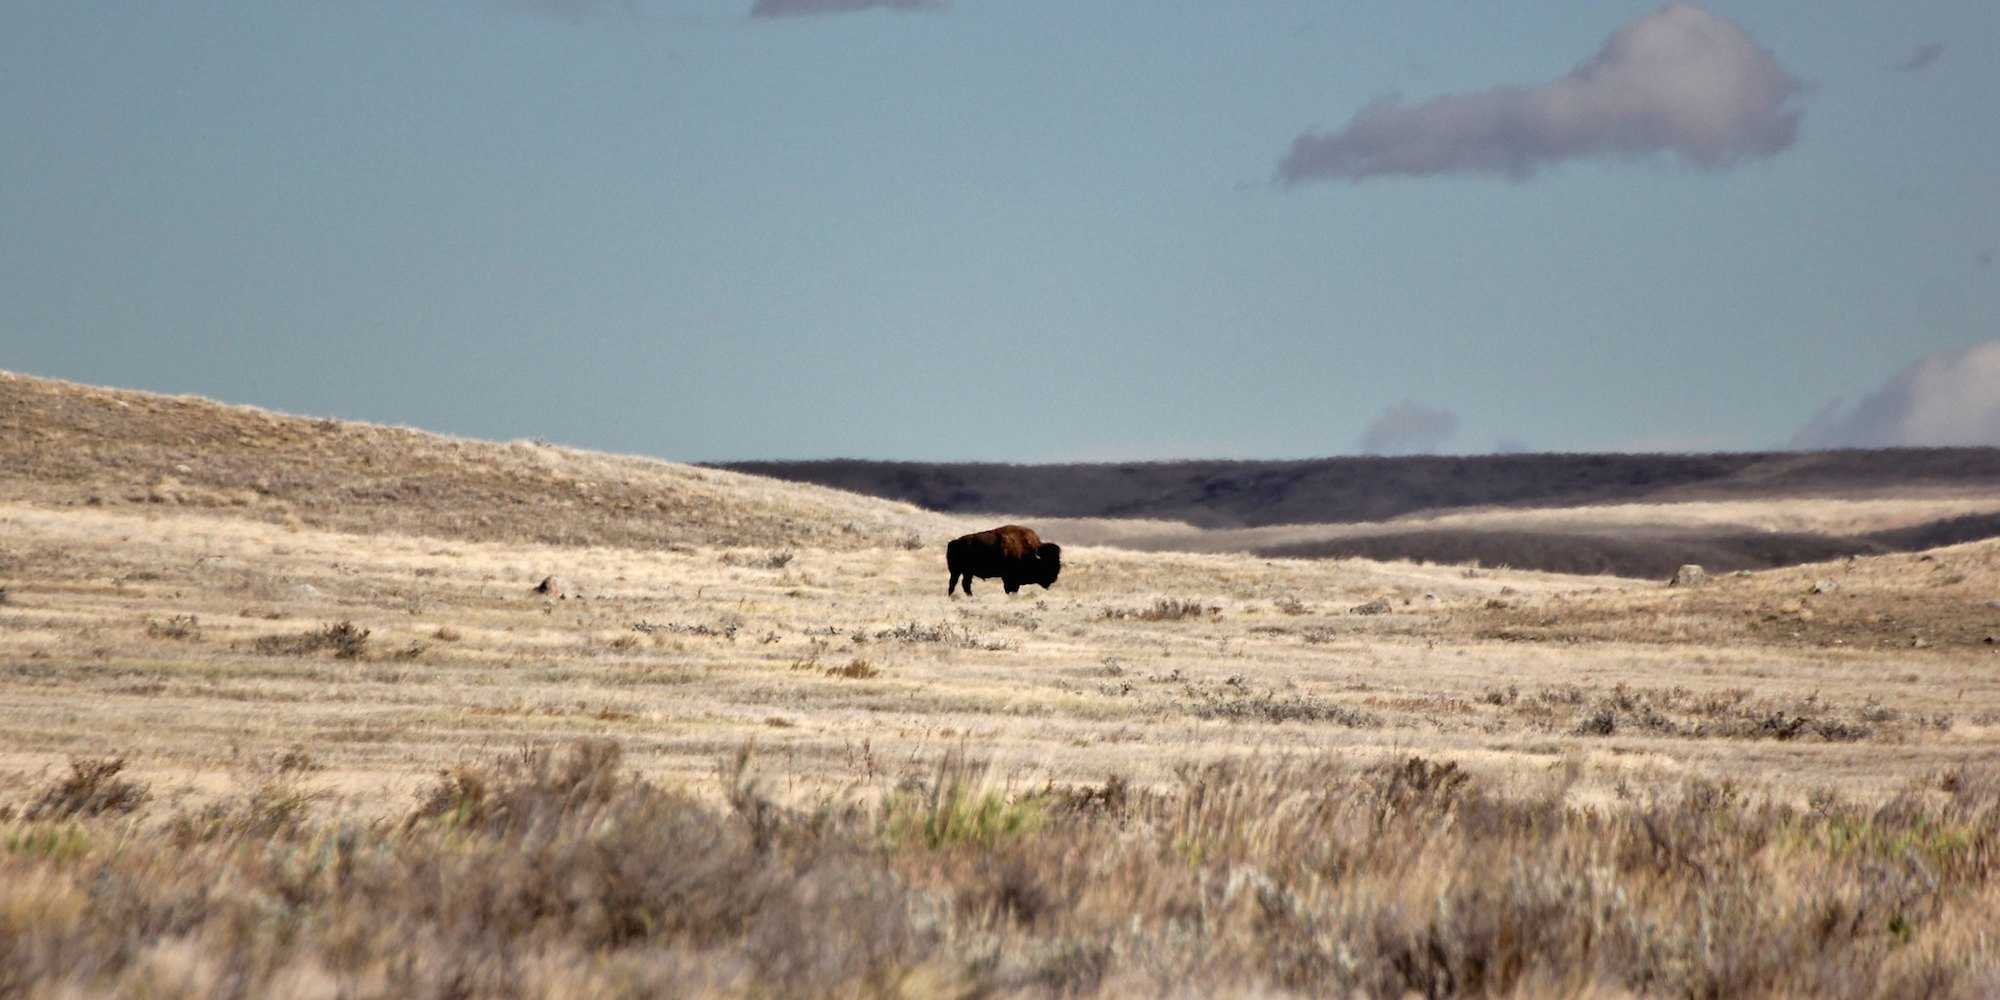 A bison on the grasslands of Saskatchewan